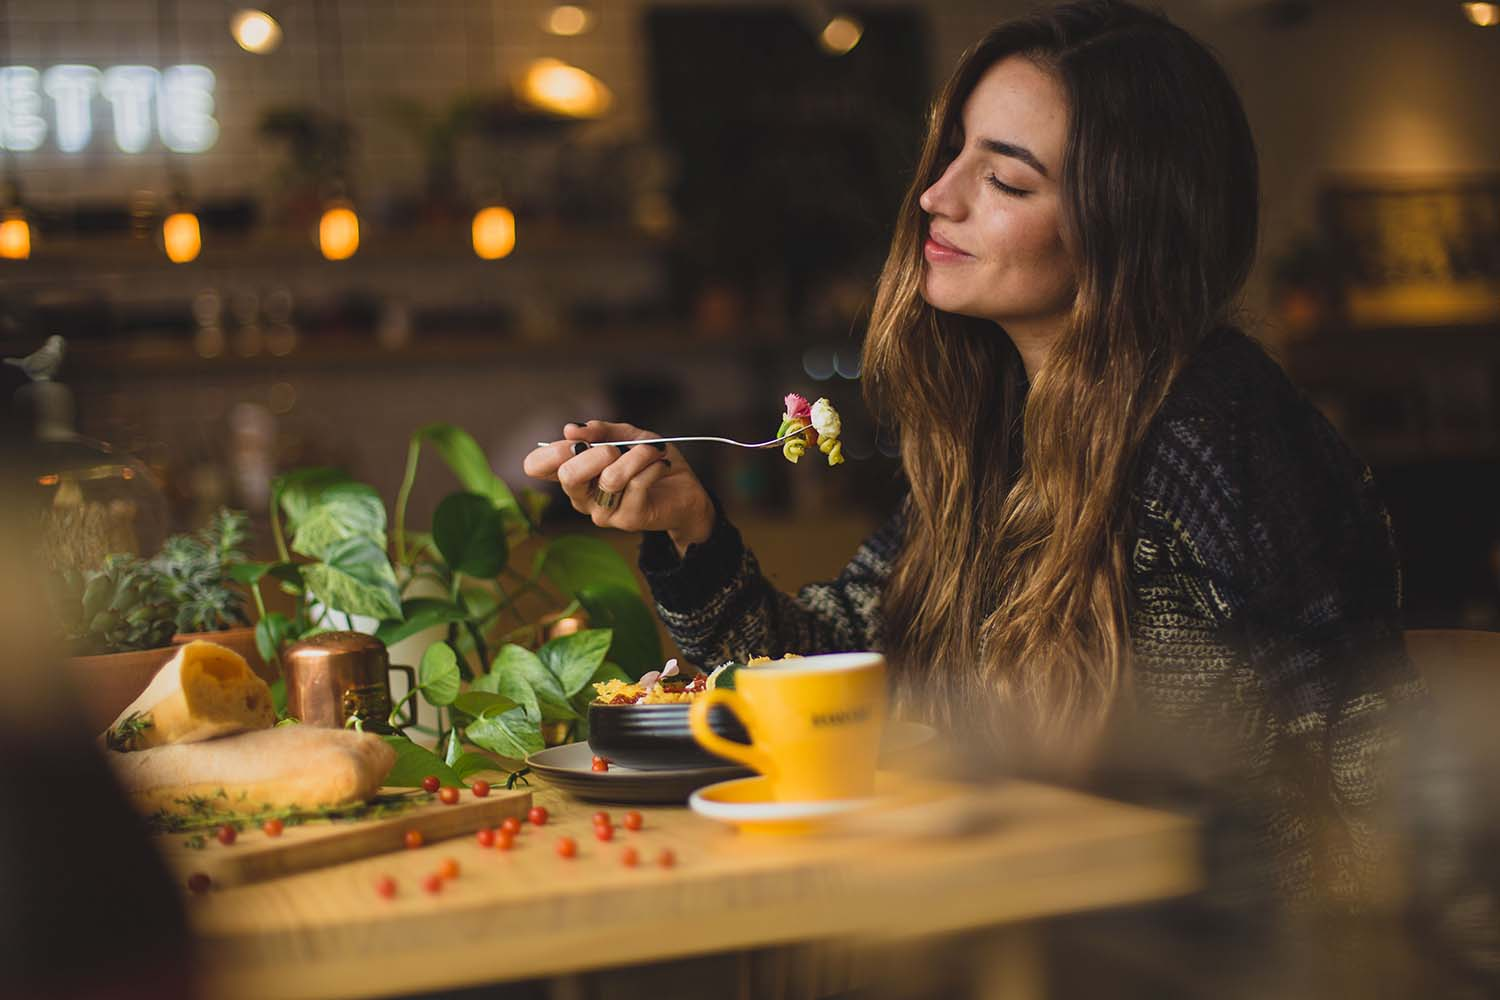 Things to Consider When Choosing a Restaurant